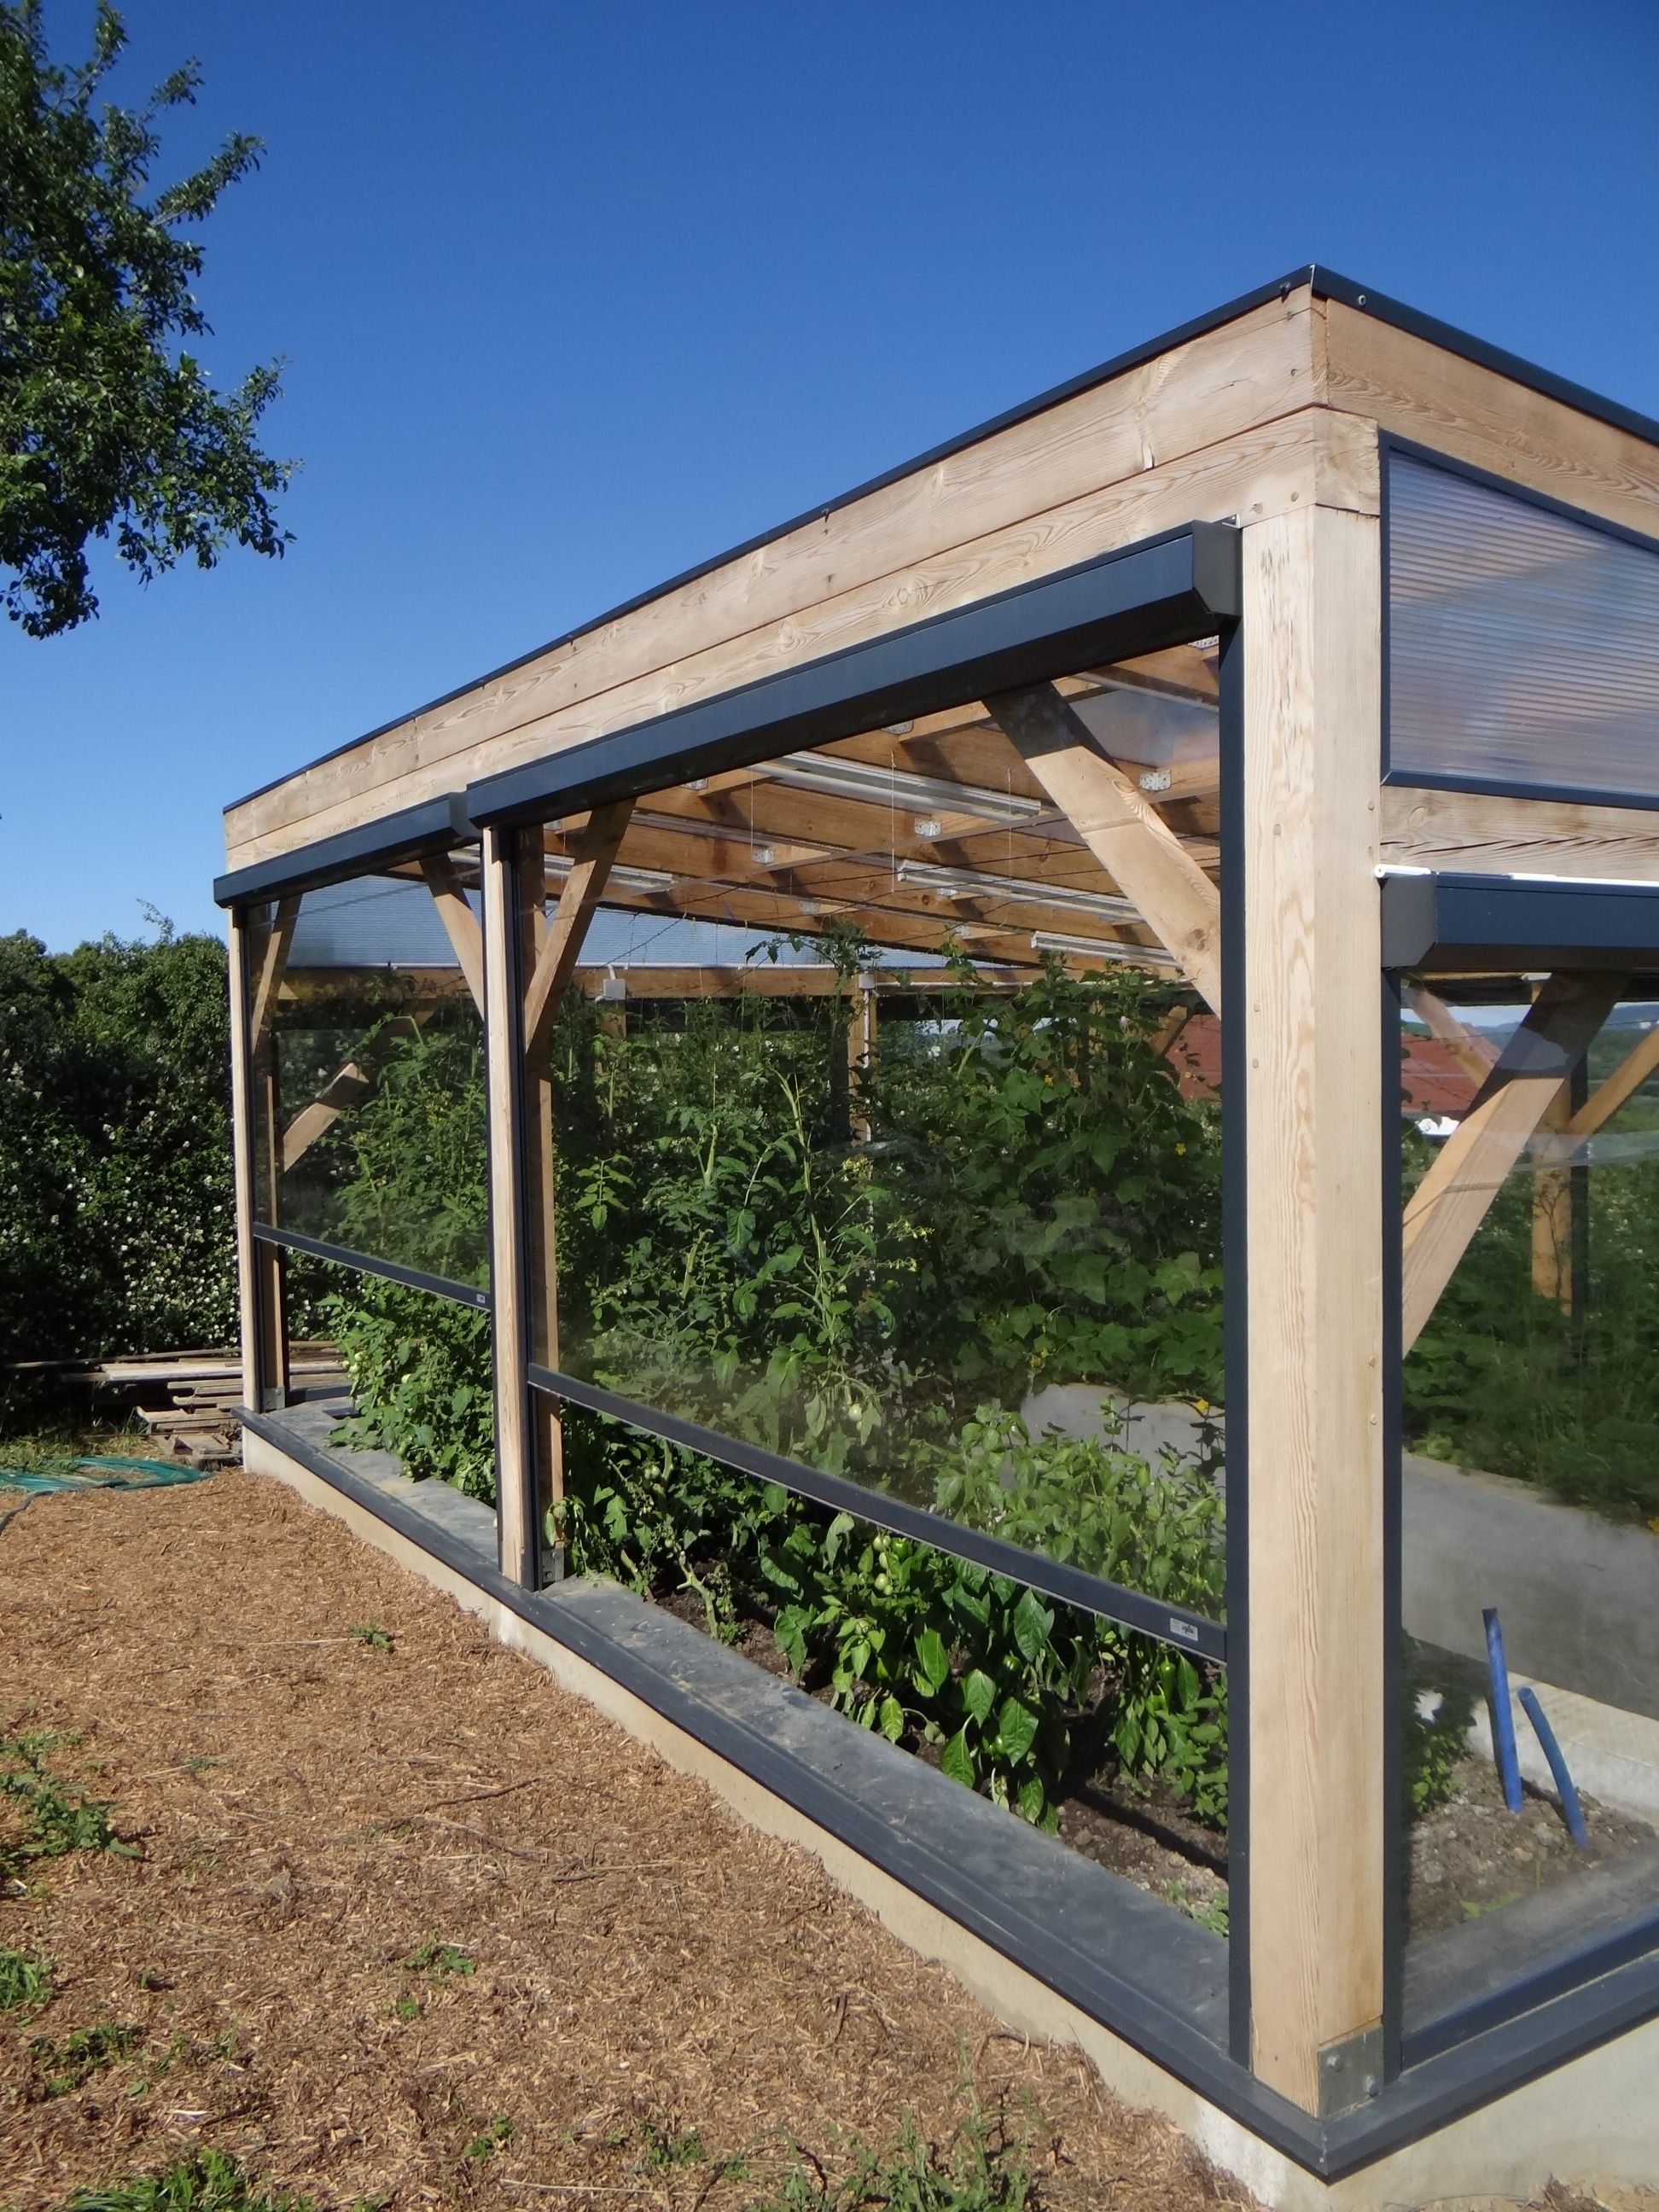 Exterior Roller Blind With Zip System And With Transparent Foil Use In  Greenhouse.